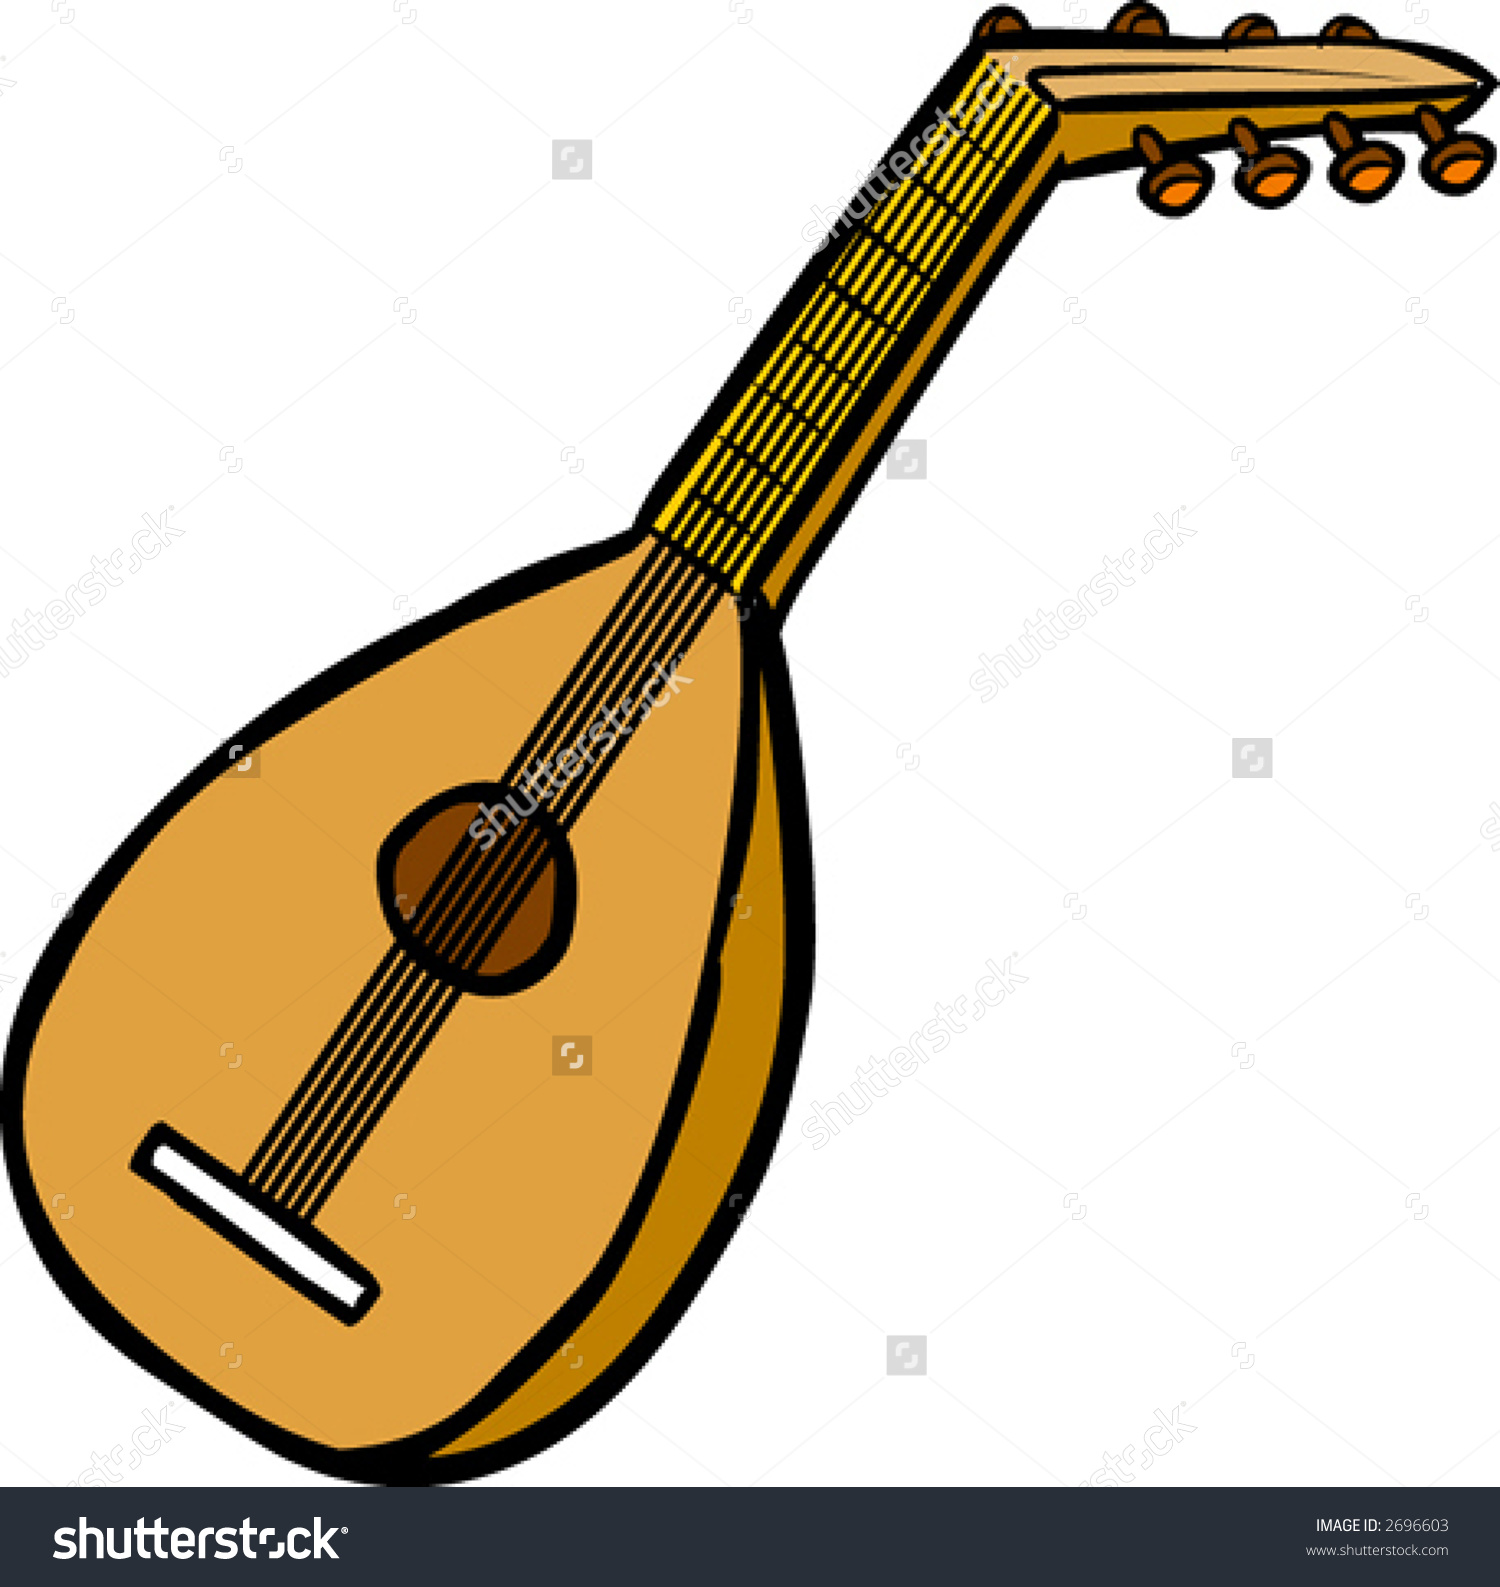 Lute clipart #8, Download drawings